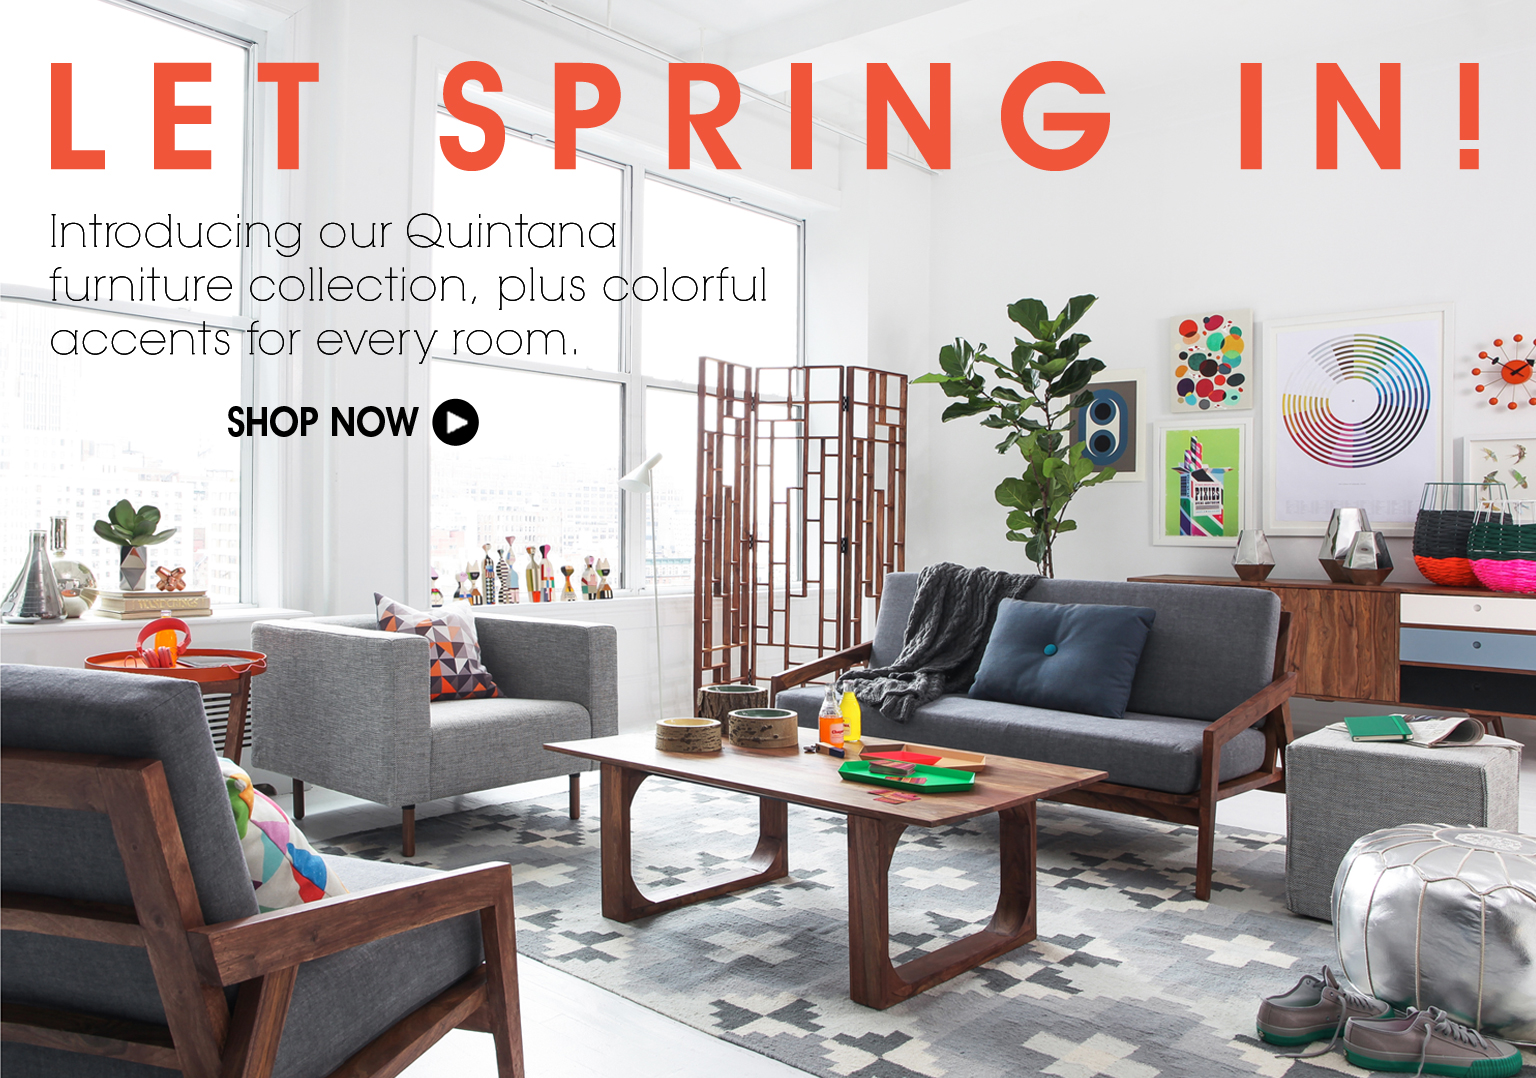 Let Spring In! Introducing Our Quintana Furniture Collection + Accents For Every Room.